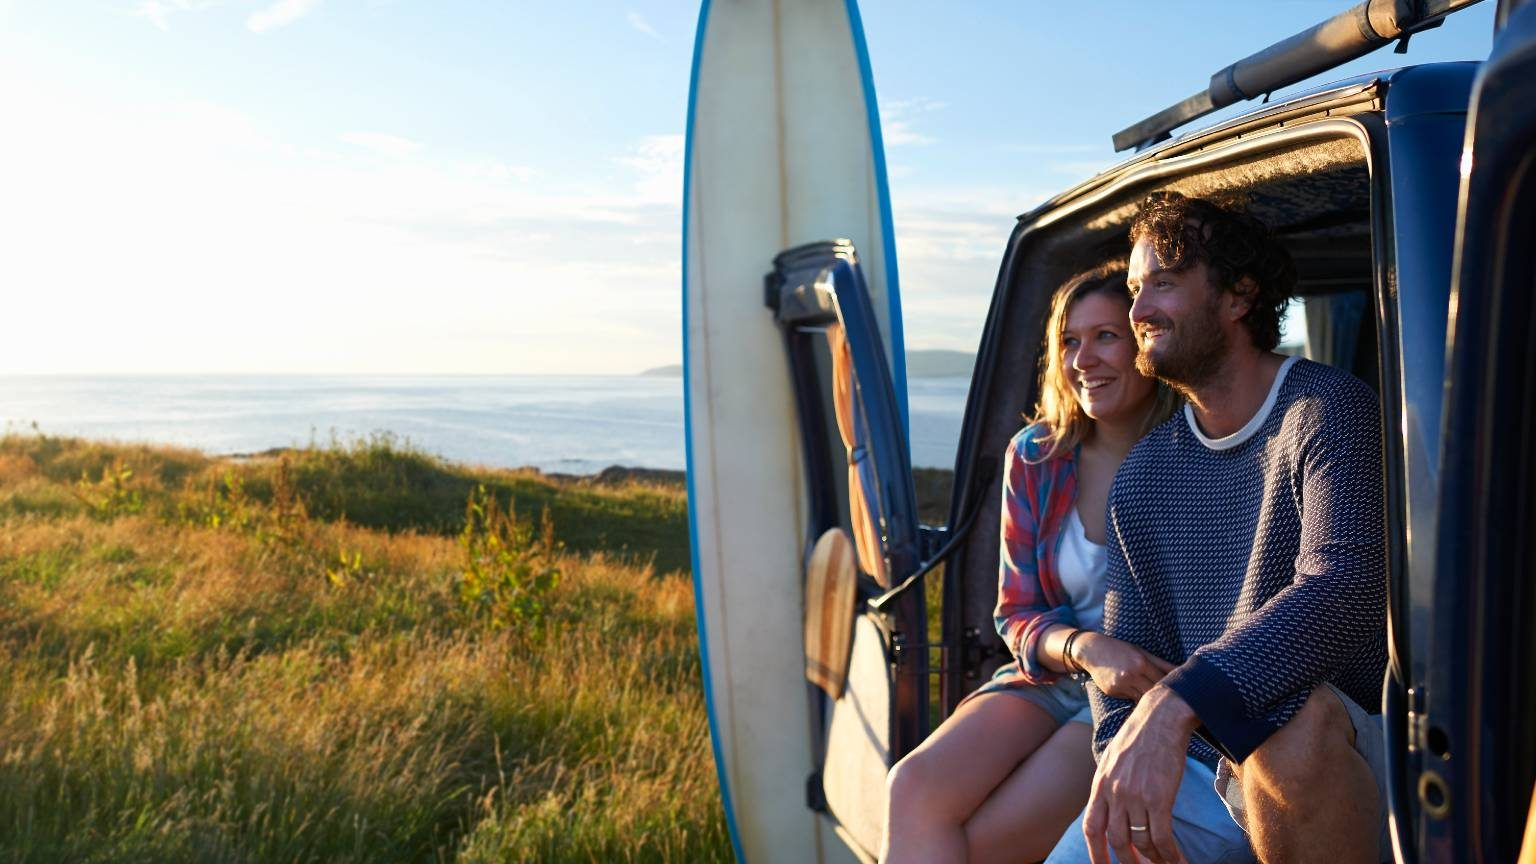 A surfing couple smile as they sit in their camper van and embrace on an idyllic summer Atlantic coastline.